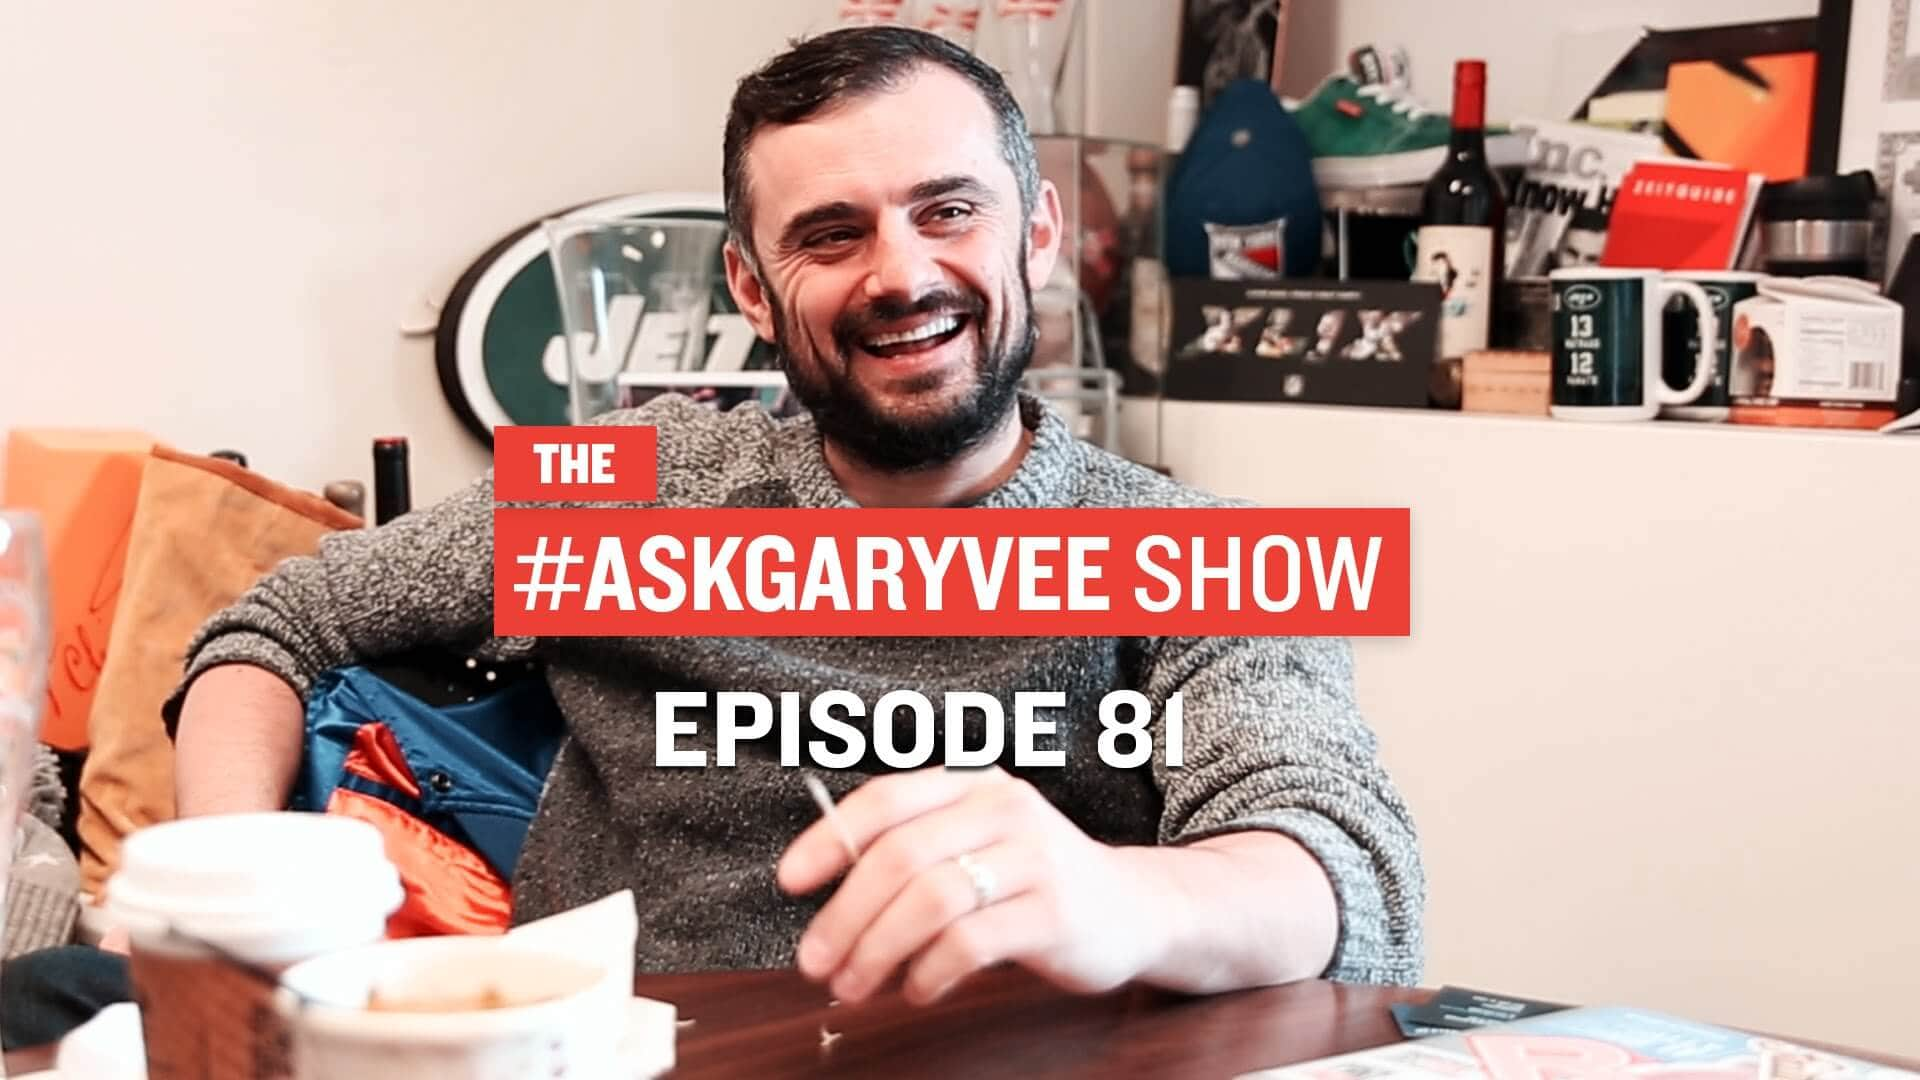 #AskGaryVee Episode 81